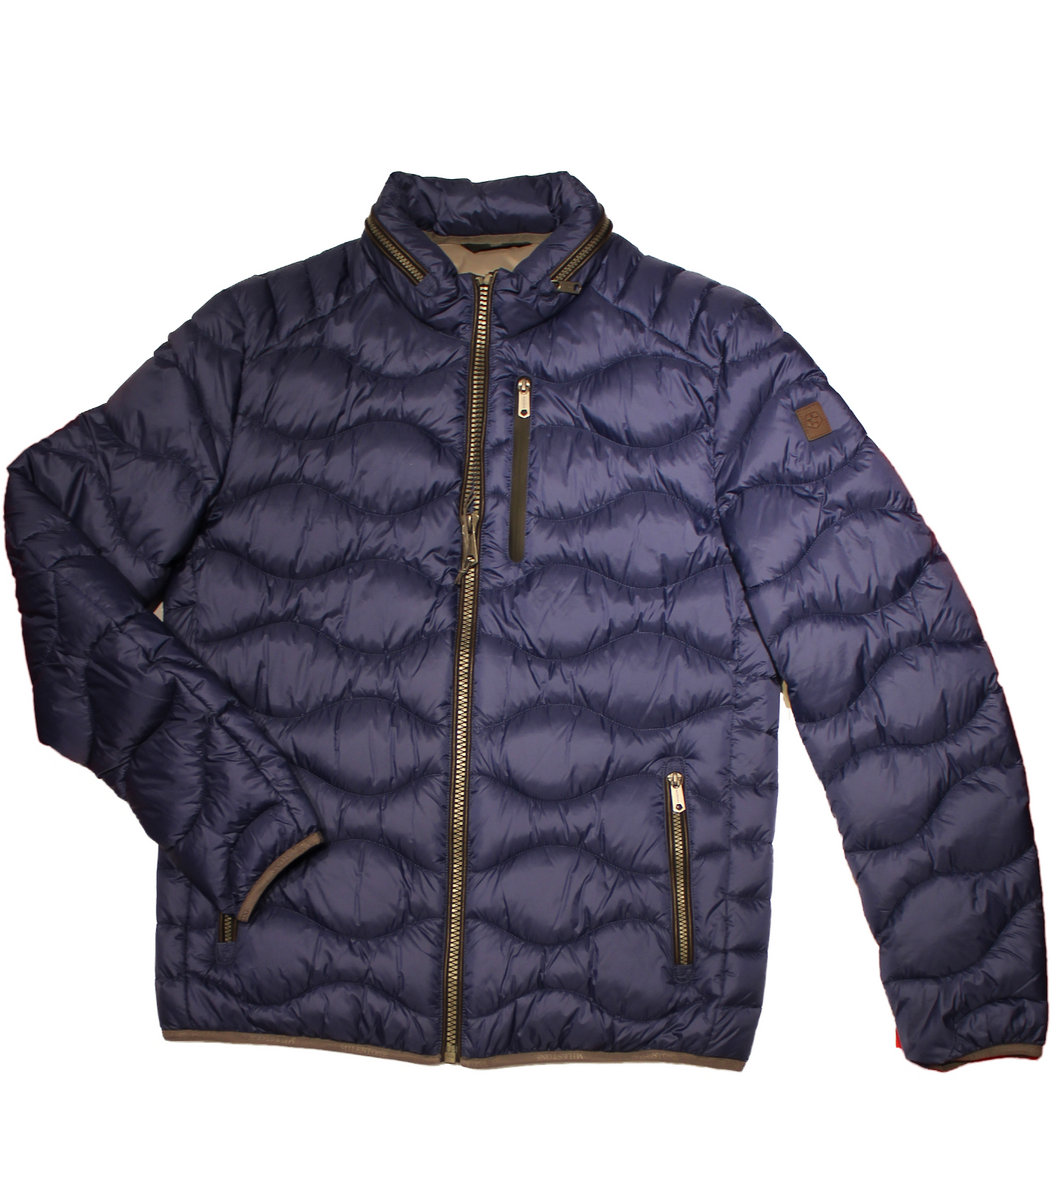 Puffer Jacket by Milestone